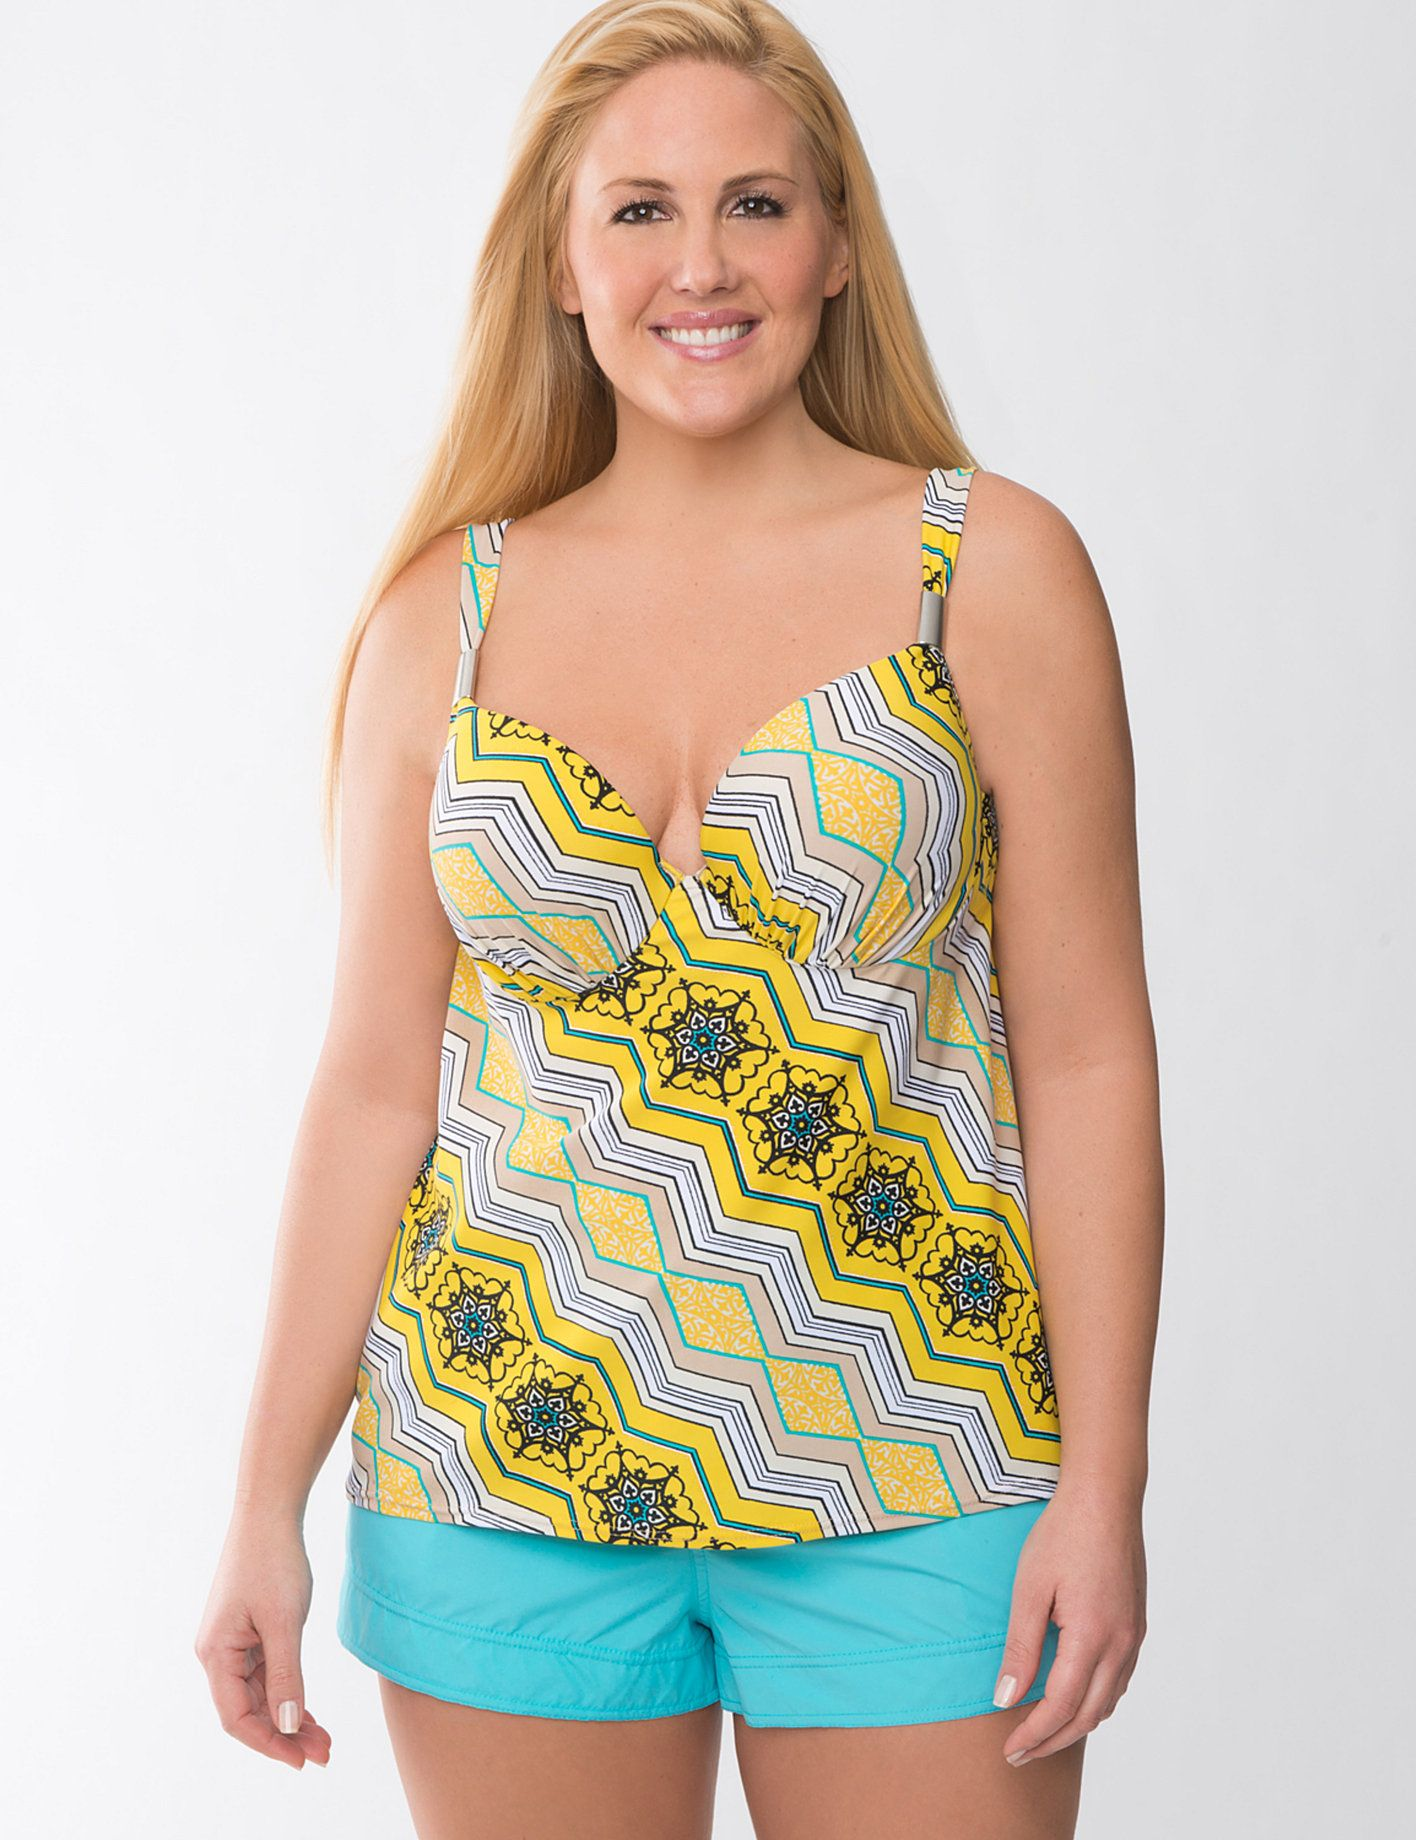 pluge plus size swimwear & swim tank tops for women | lane bryant